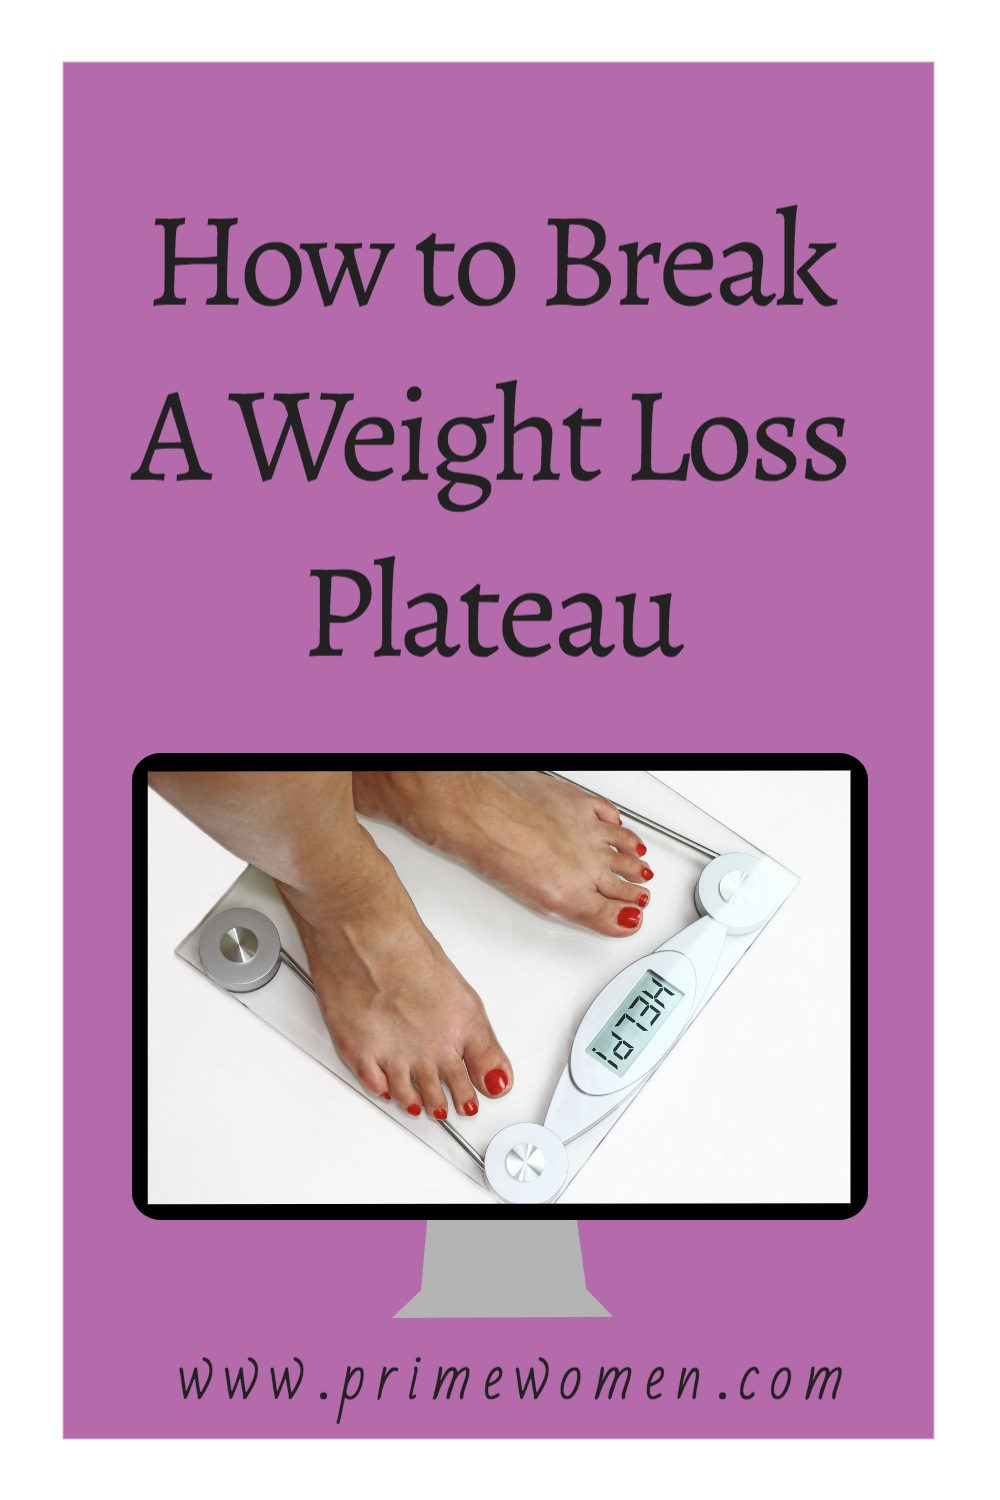 How-to-Break-A-Weight-Loss-Plateau